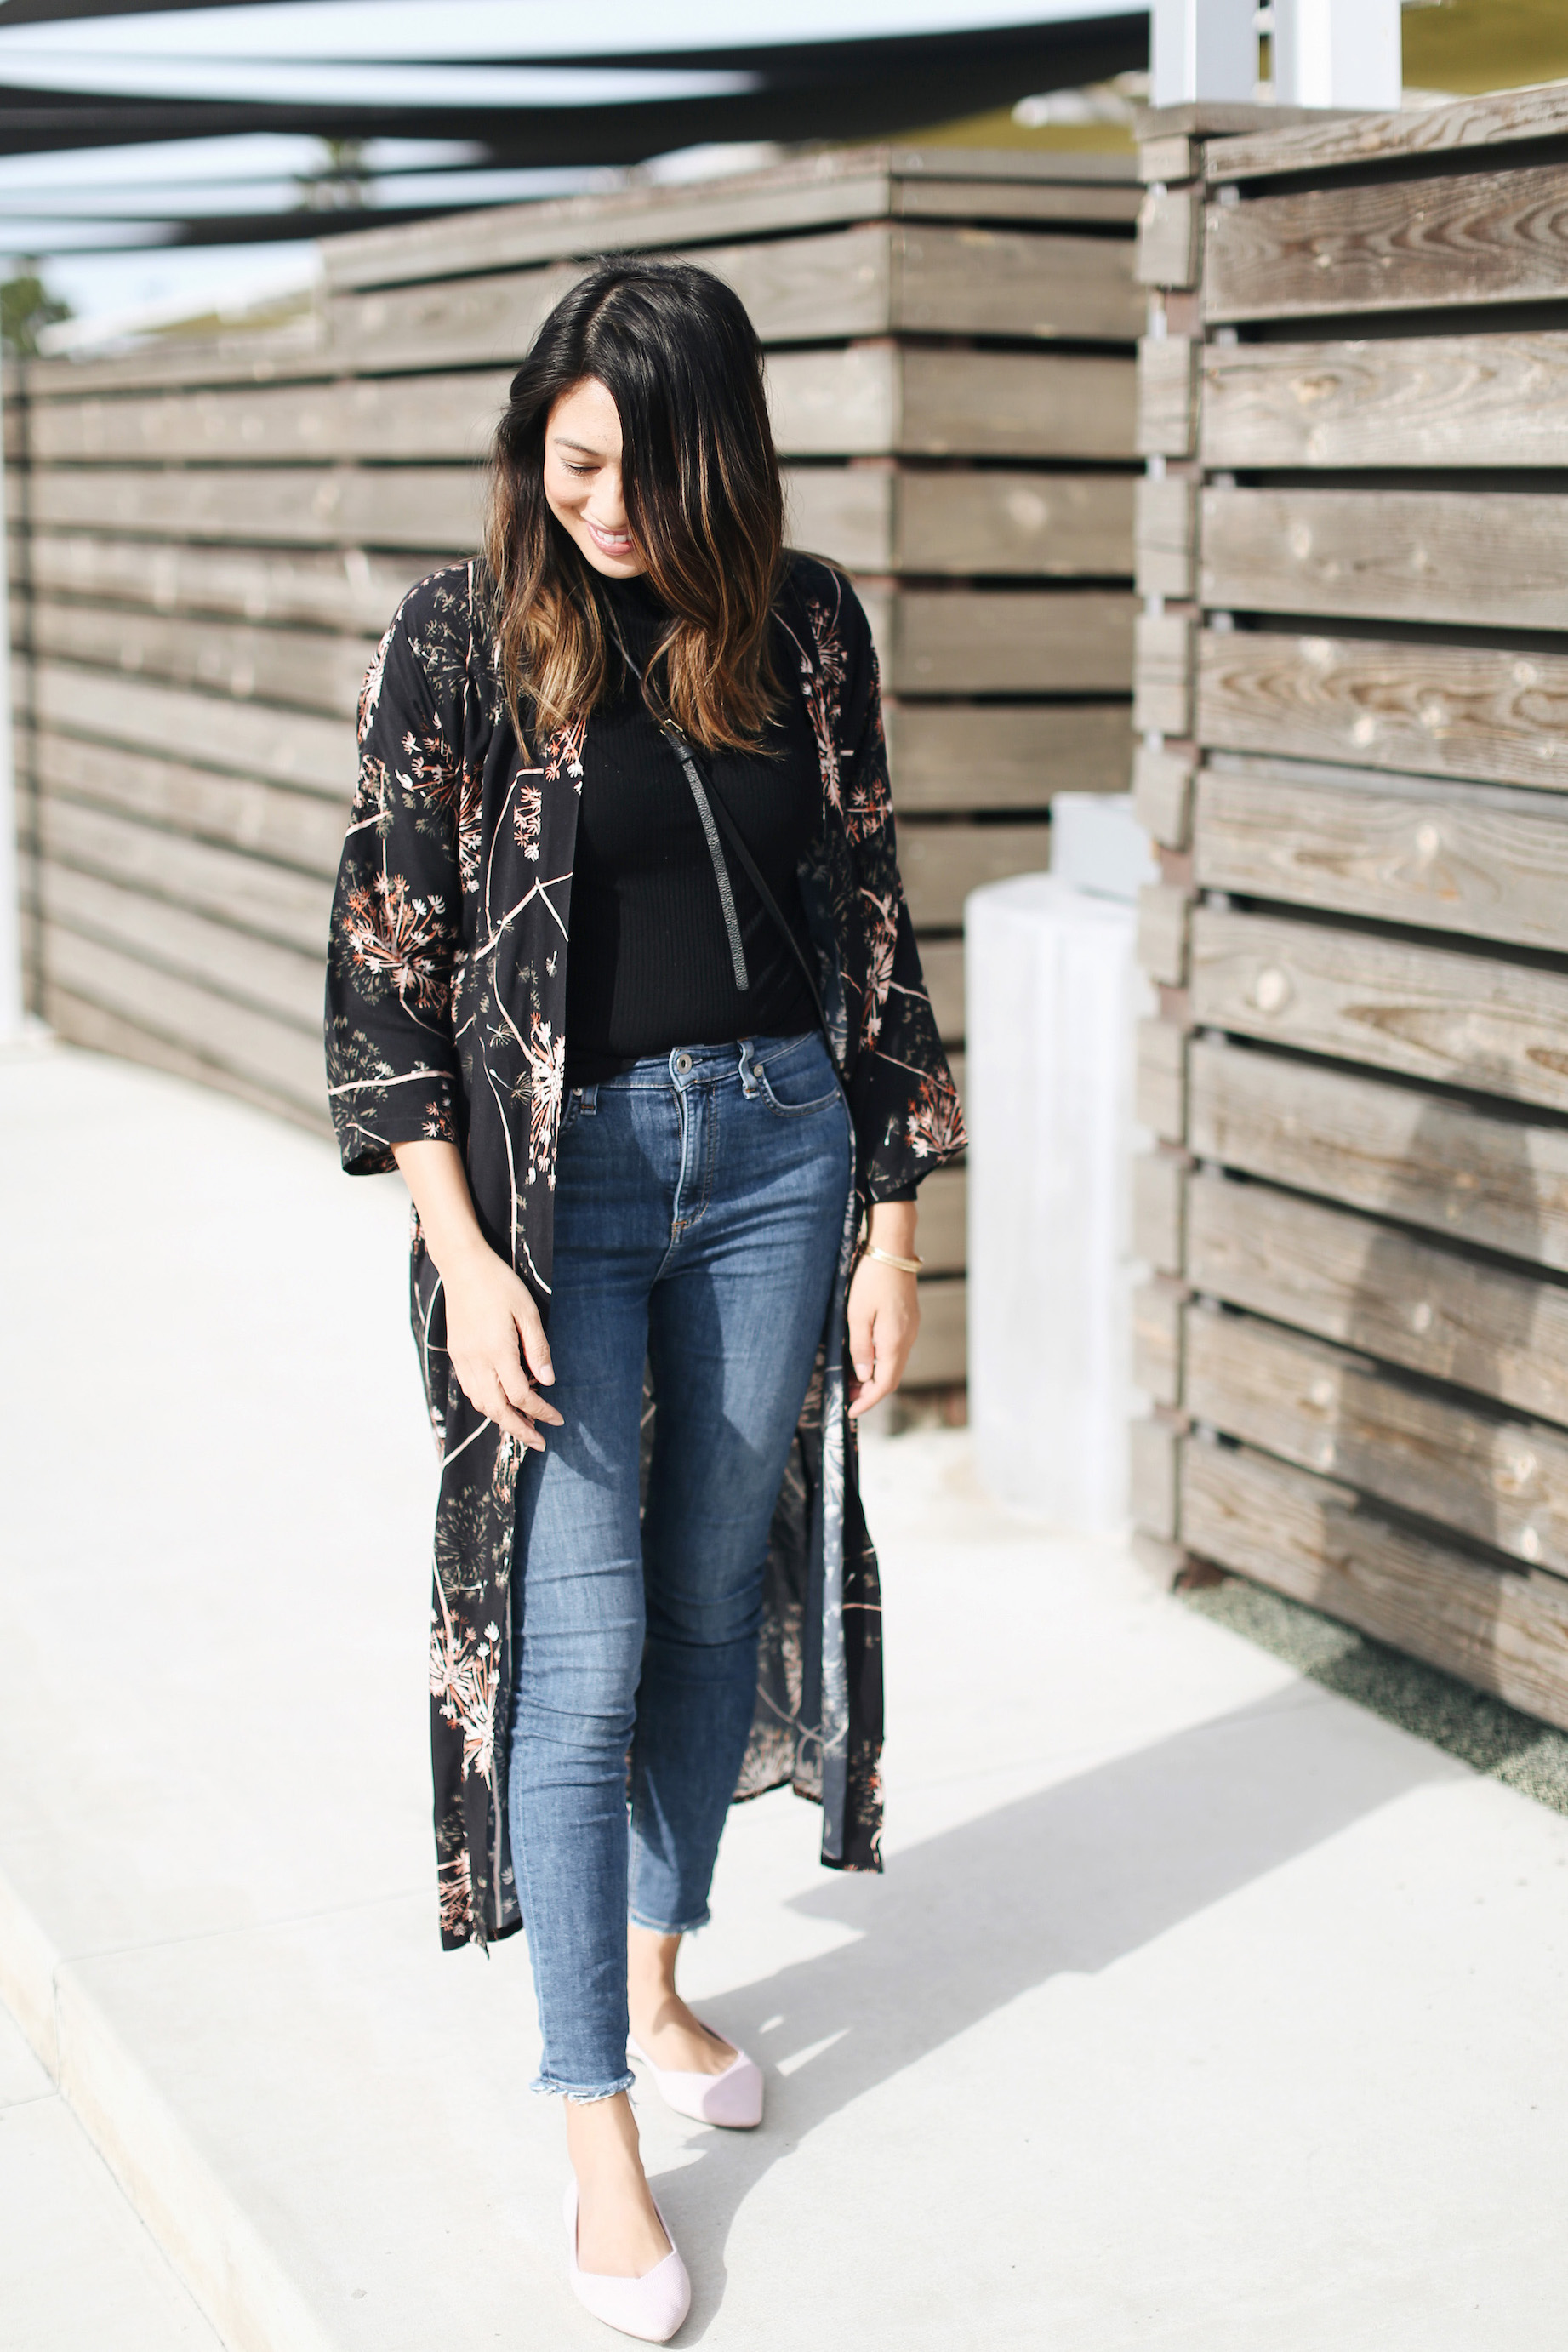 Casual Monday outfit - A Week Of Polished & Professional Outfits With Sustainable Lifestyle Blogger Jonilyn Brown on The Good Trade